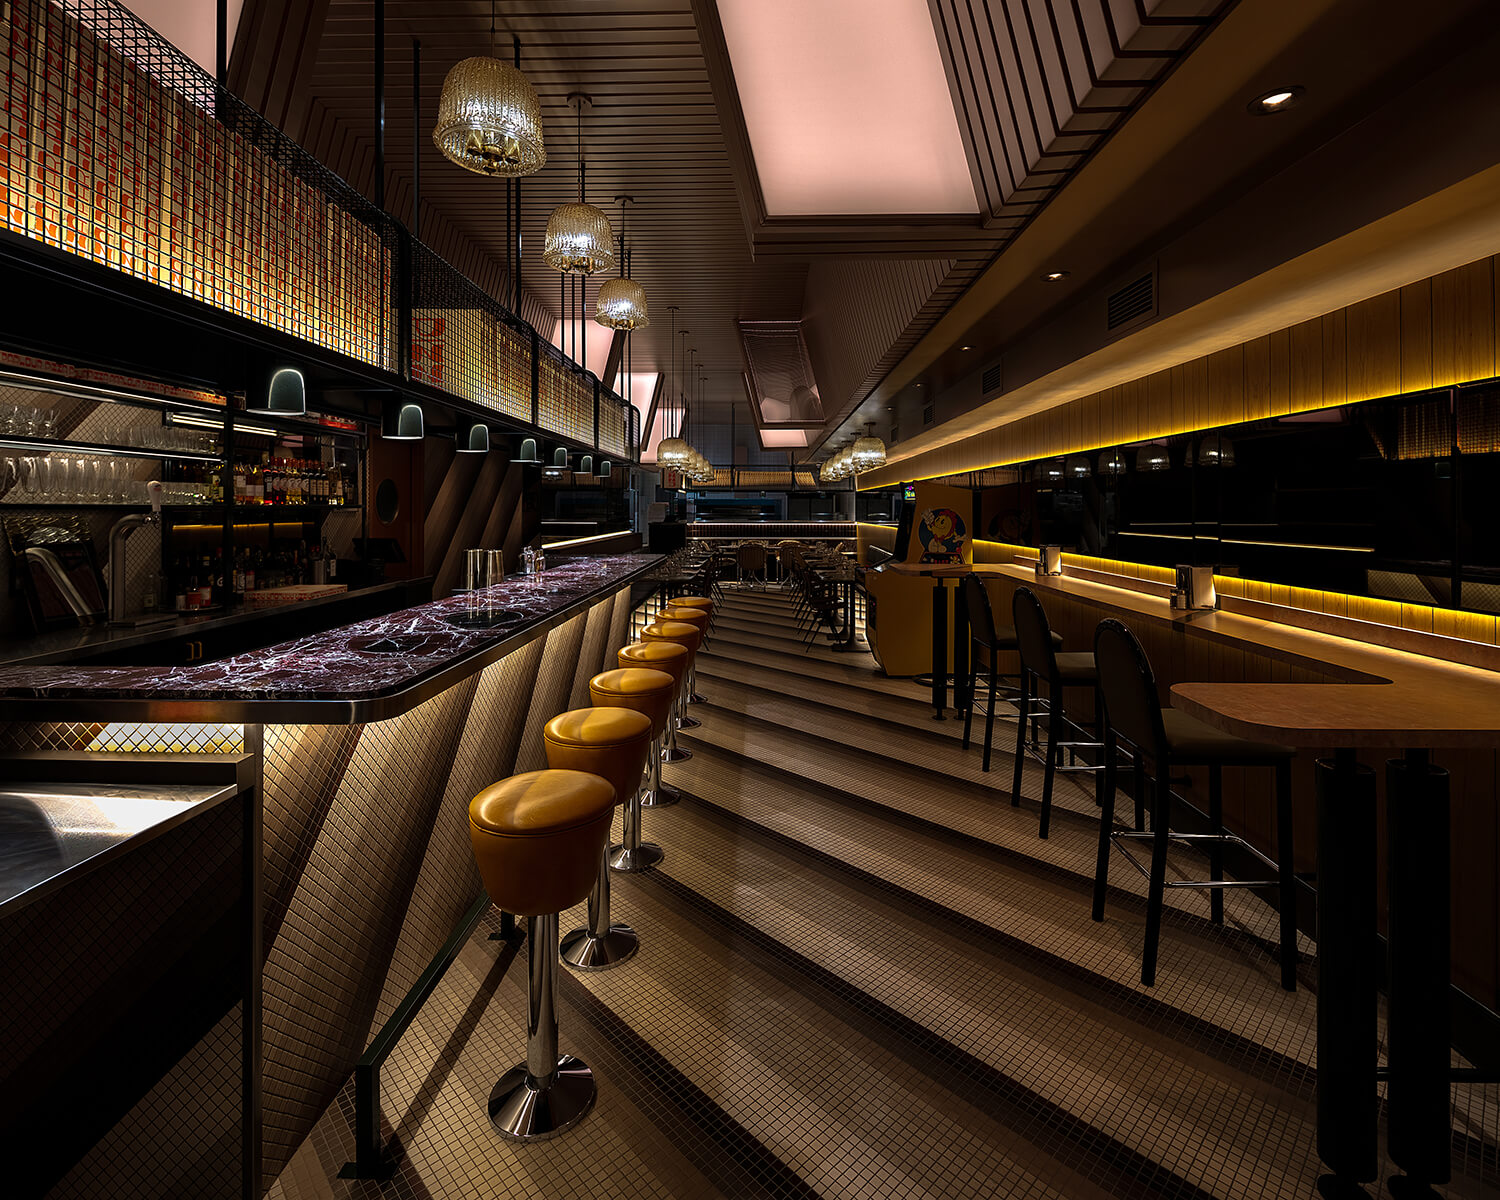 View of the bar area showing the diagonal tile pattern, vintage barstools, marble countertop, and adjacent vinyl bar